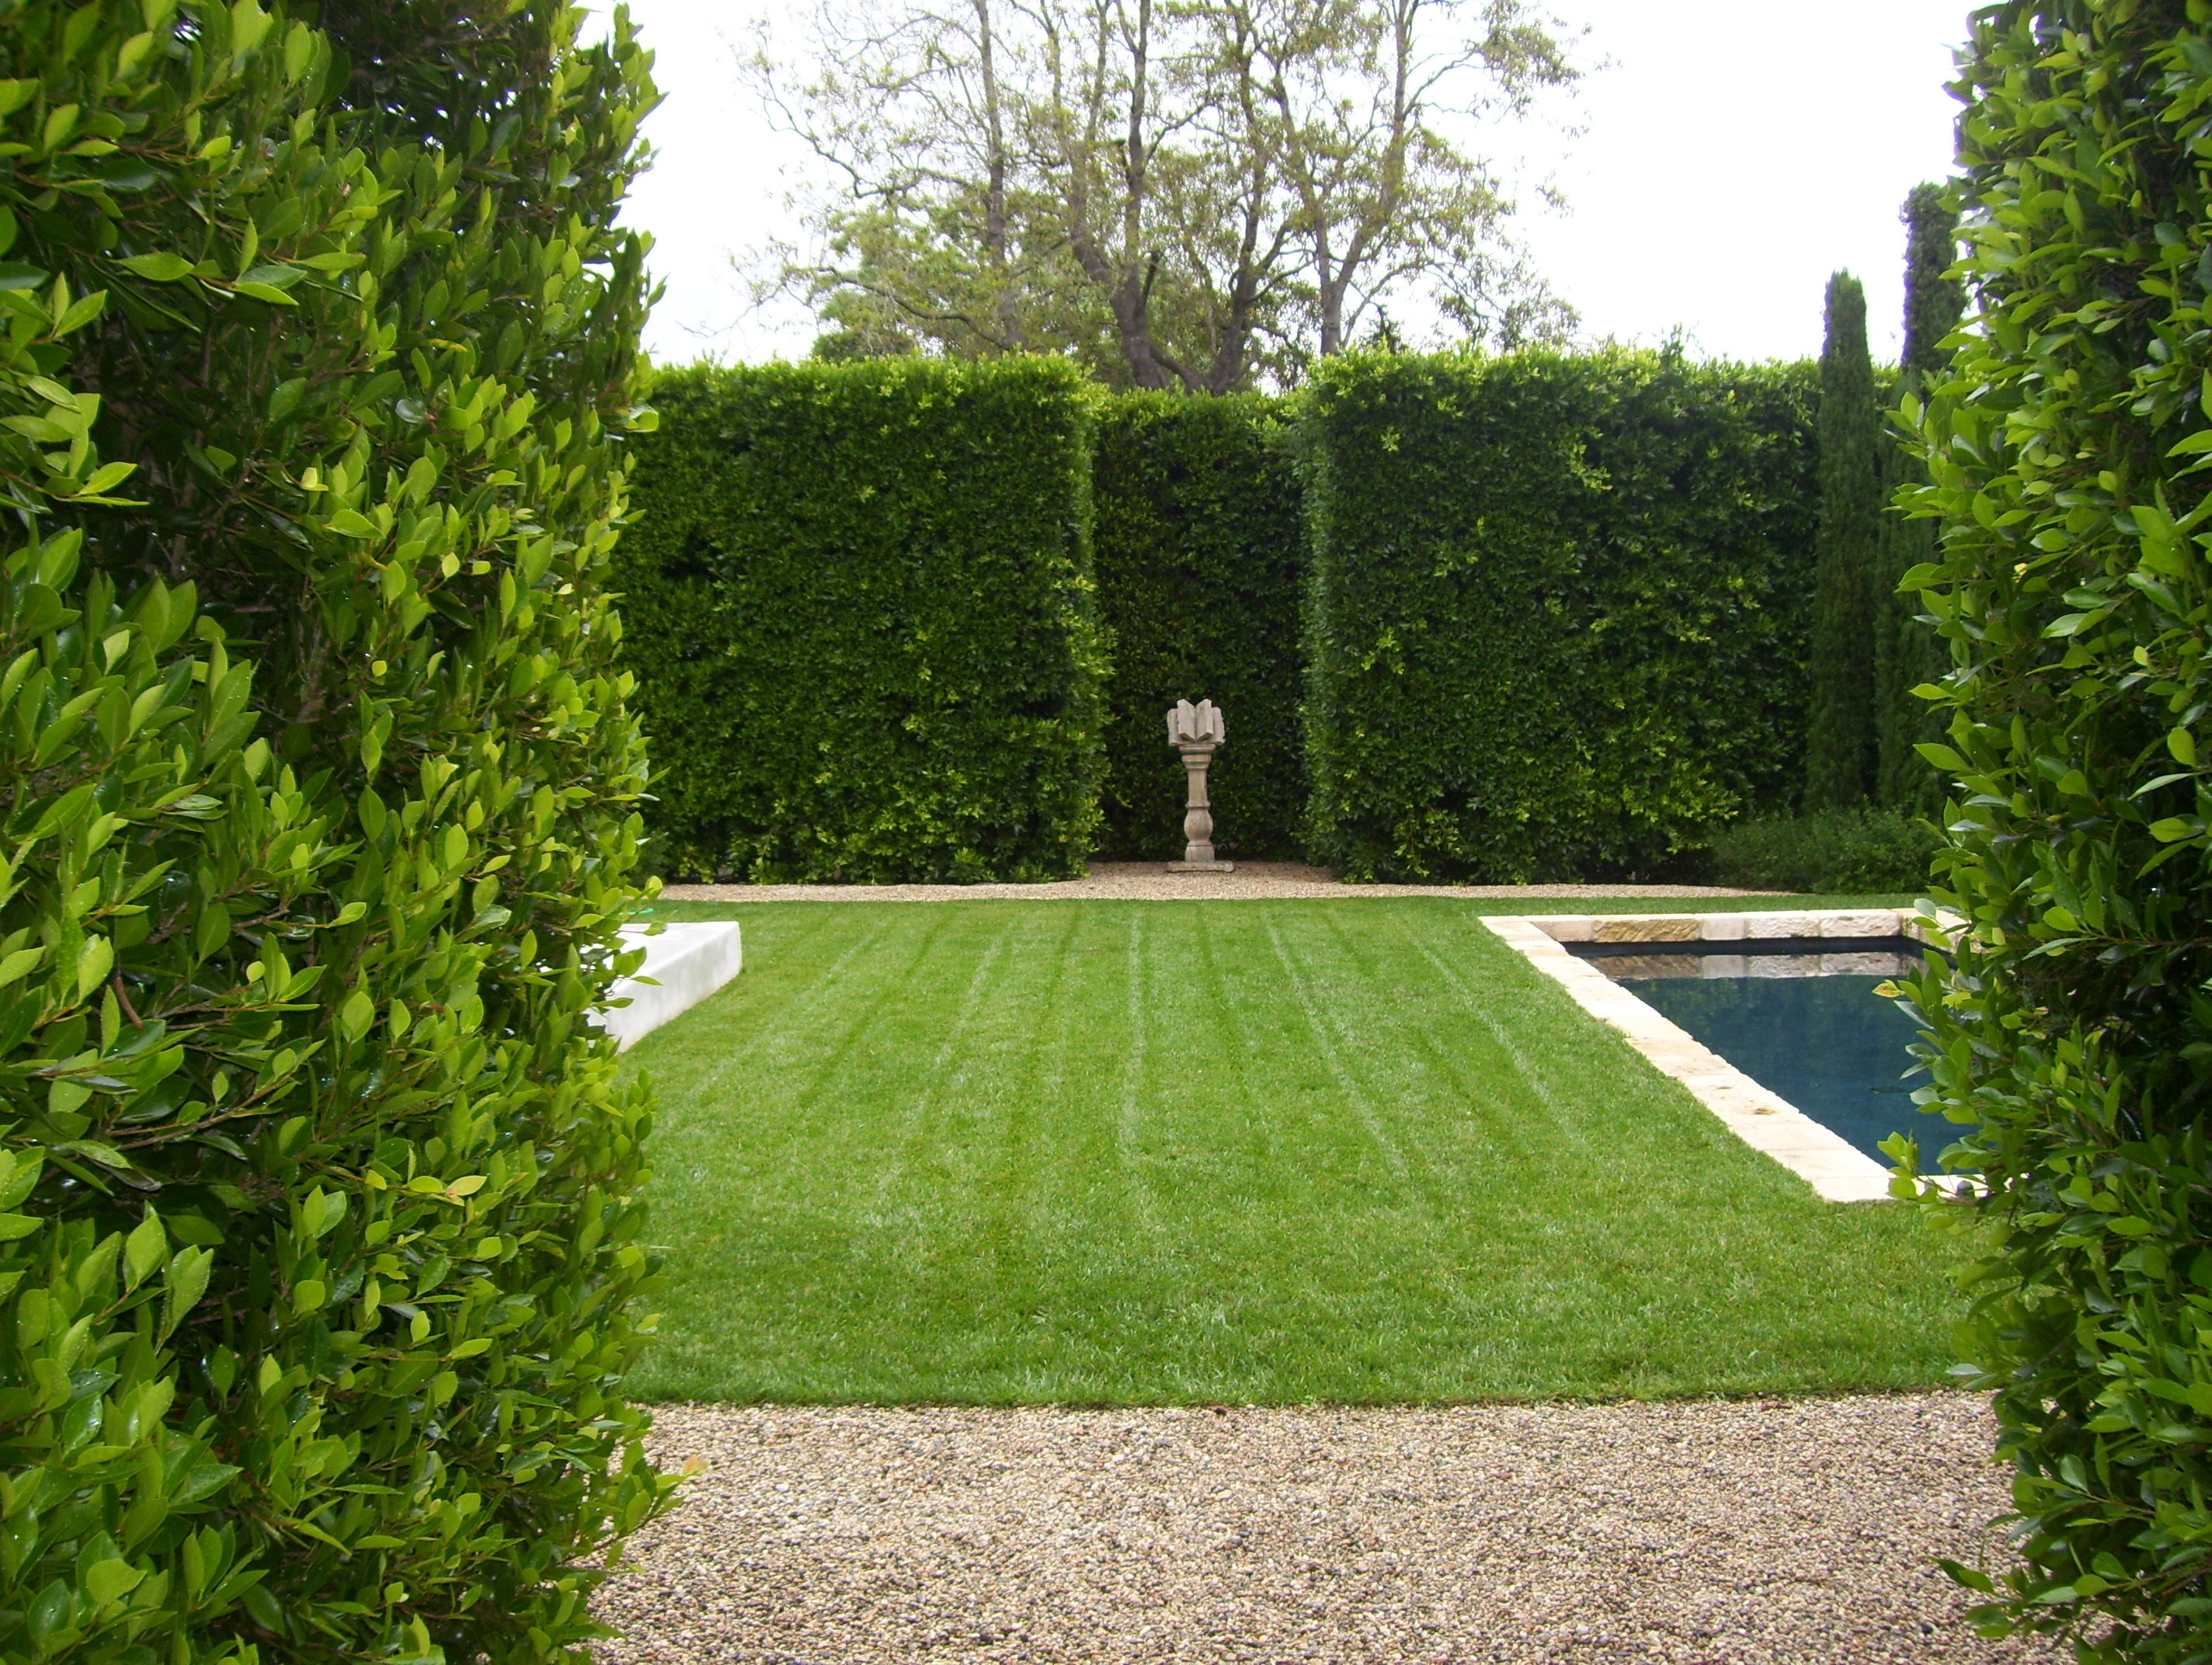 Speciality landscaping landscaping ideas santa barbara for Landscaping ideas